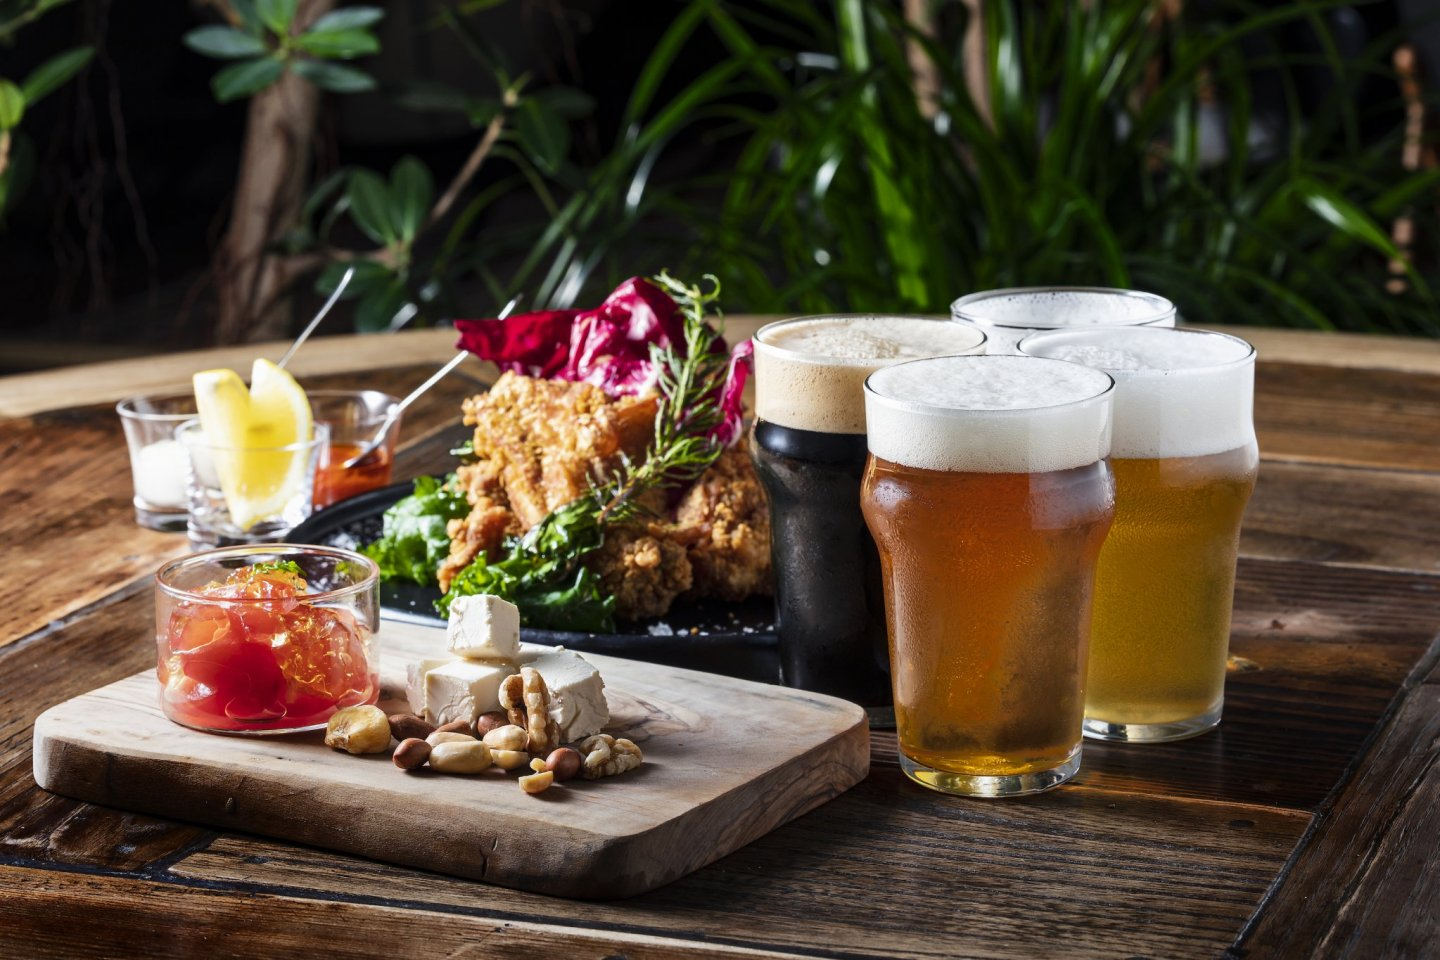 Try a variety of different beers at the Premium Beer Terrace event